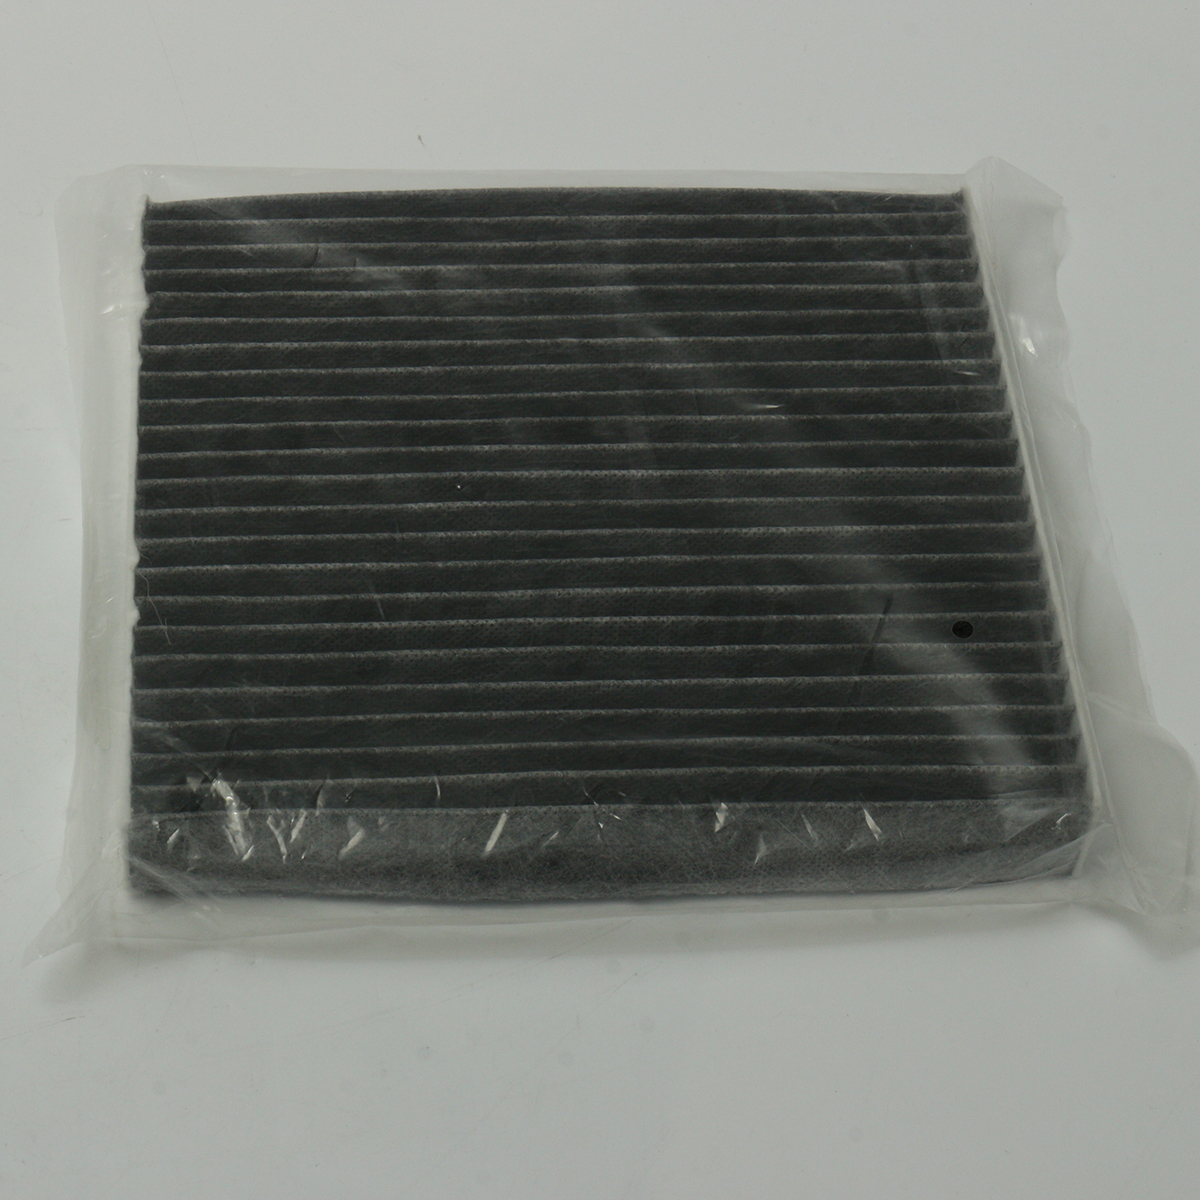 ac cabin air filter for toyota camry rav4 yaris corolla 87139 07010 87139 yzz08. Black Bedroom Furniture Sets. Home Design Ideas